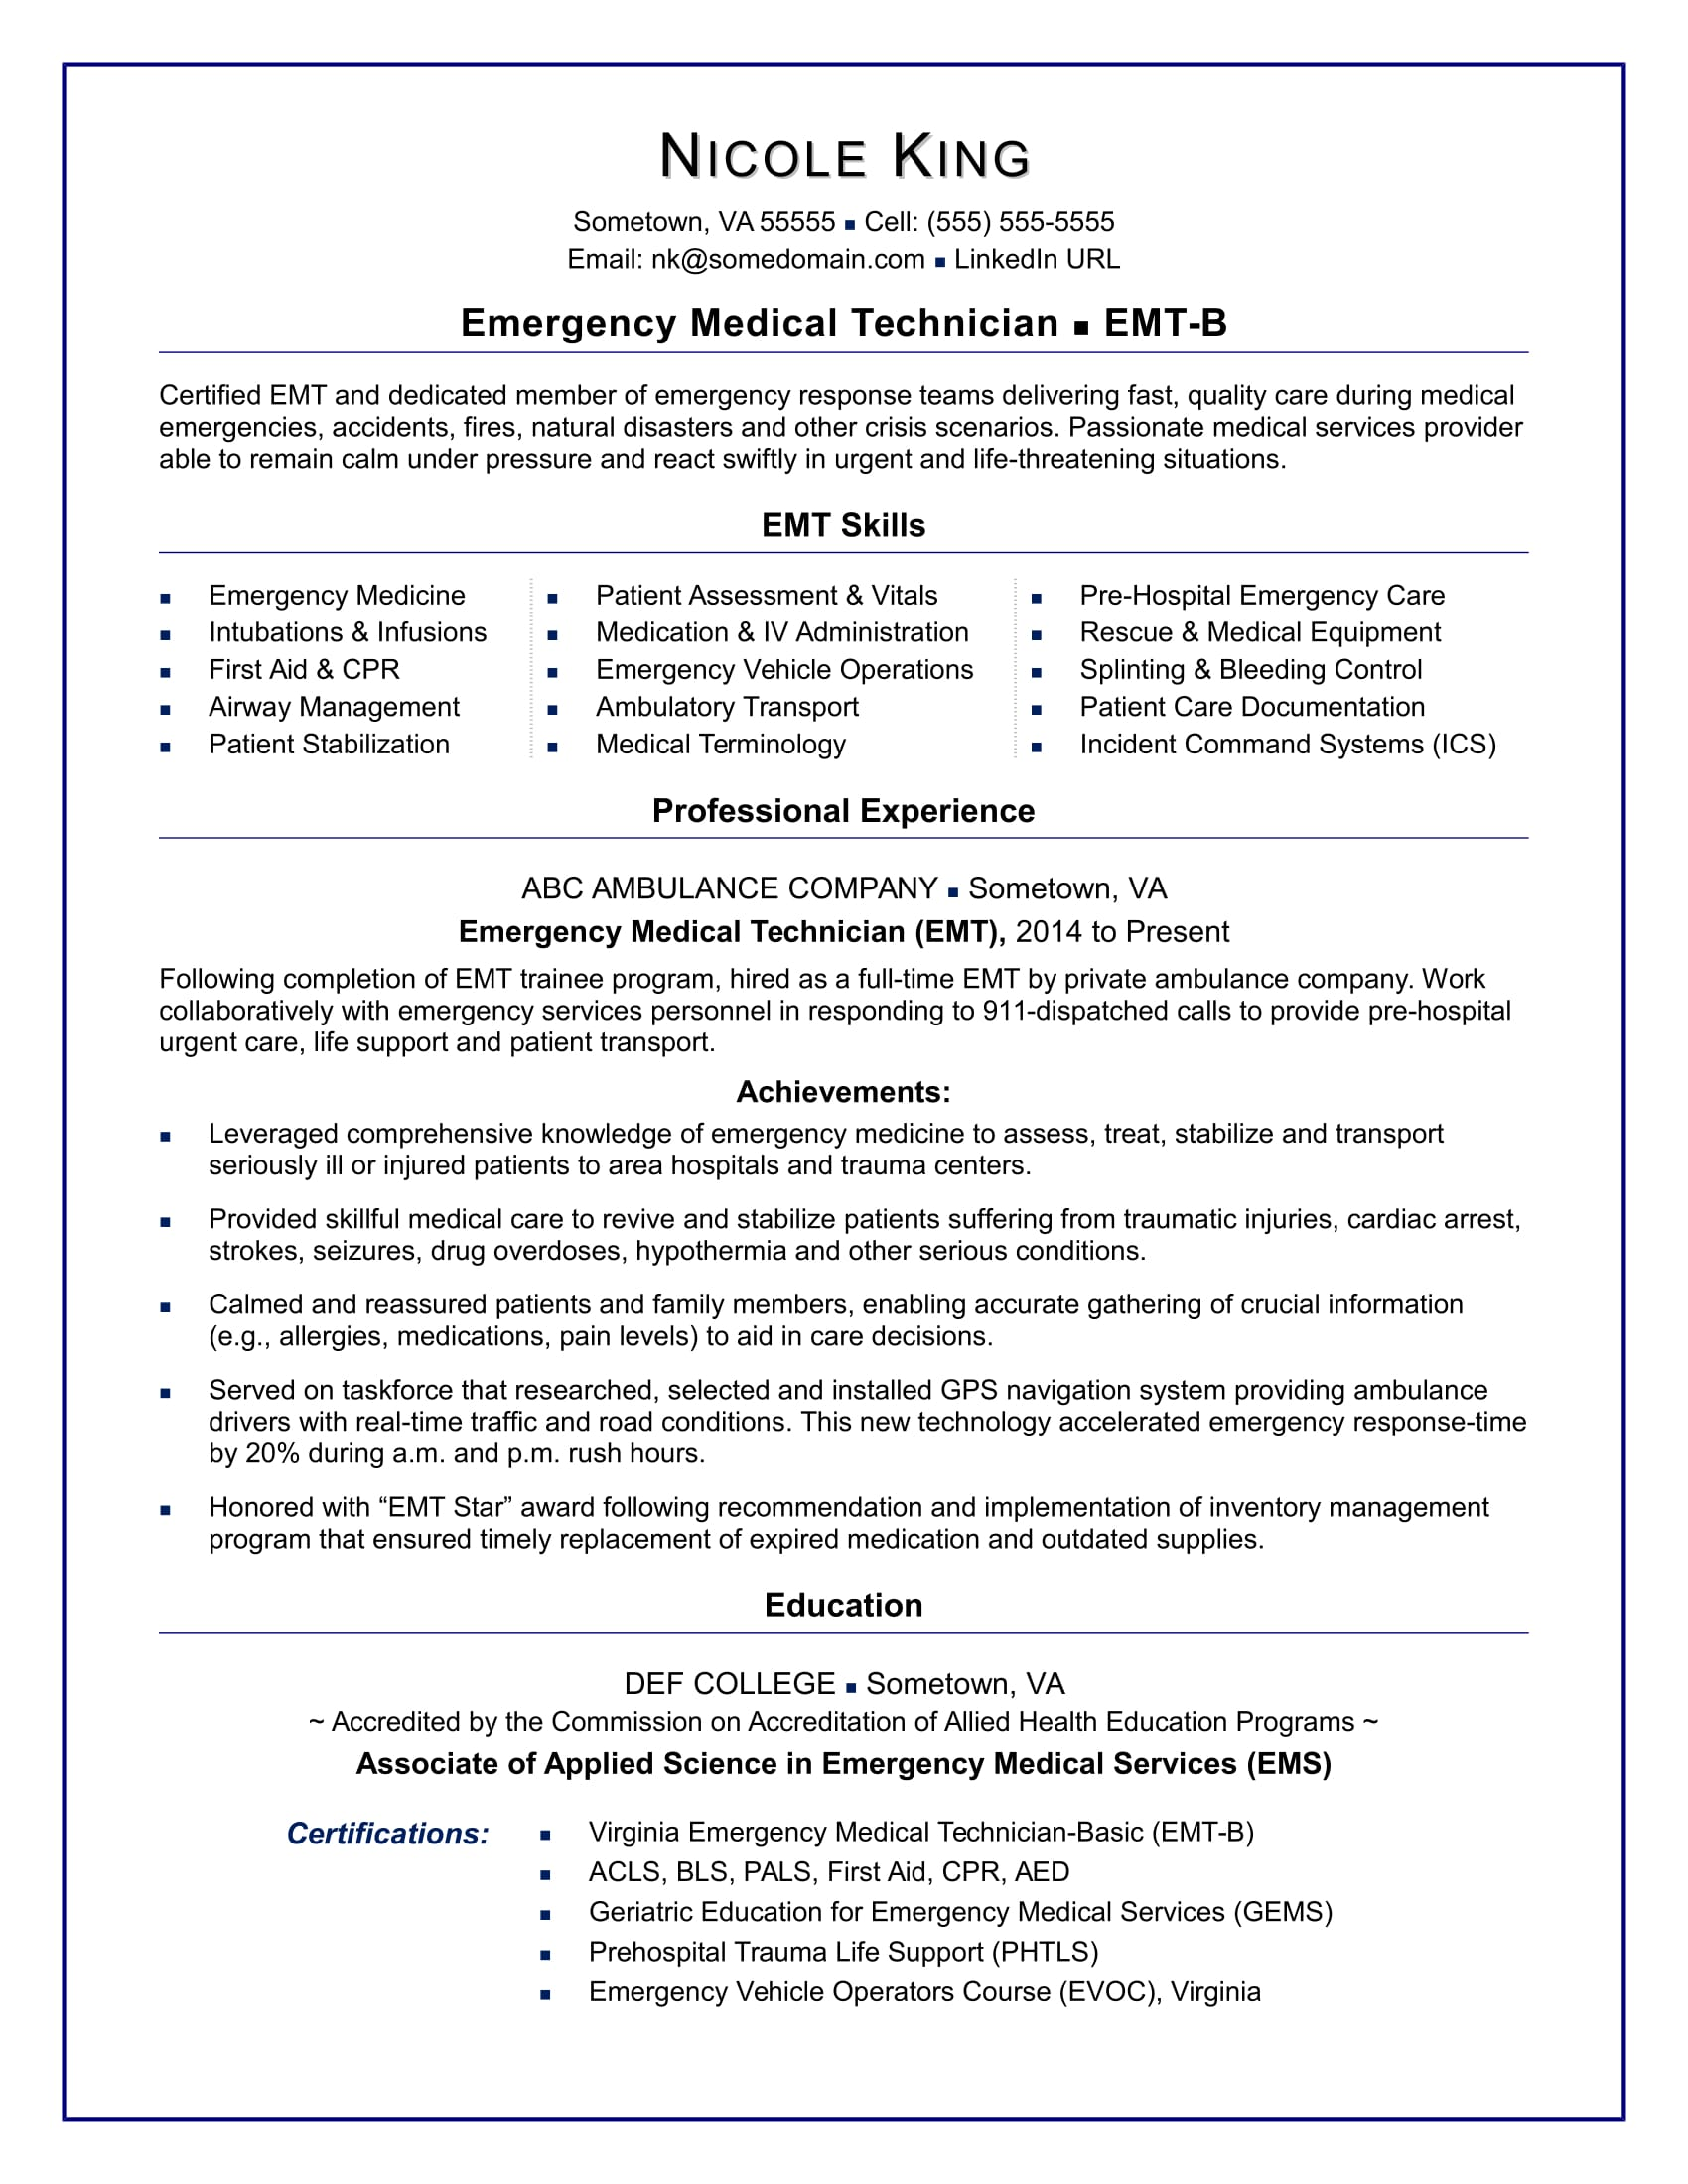 emt resume sample monster and certifications stna objective examples fleet manager active Resume Resume And Certifications